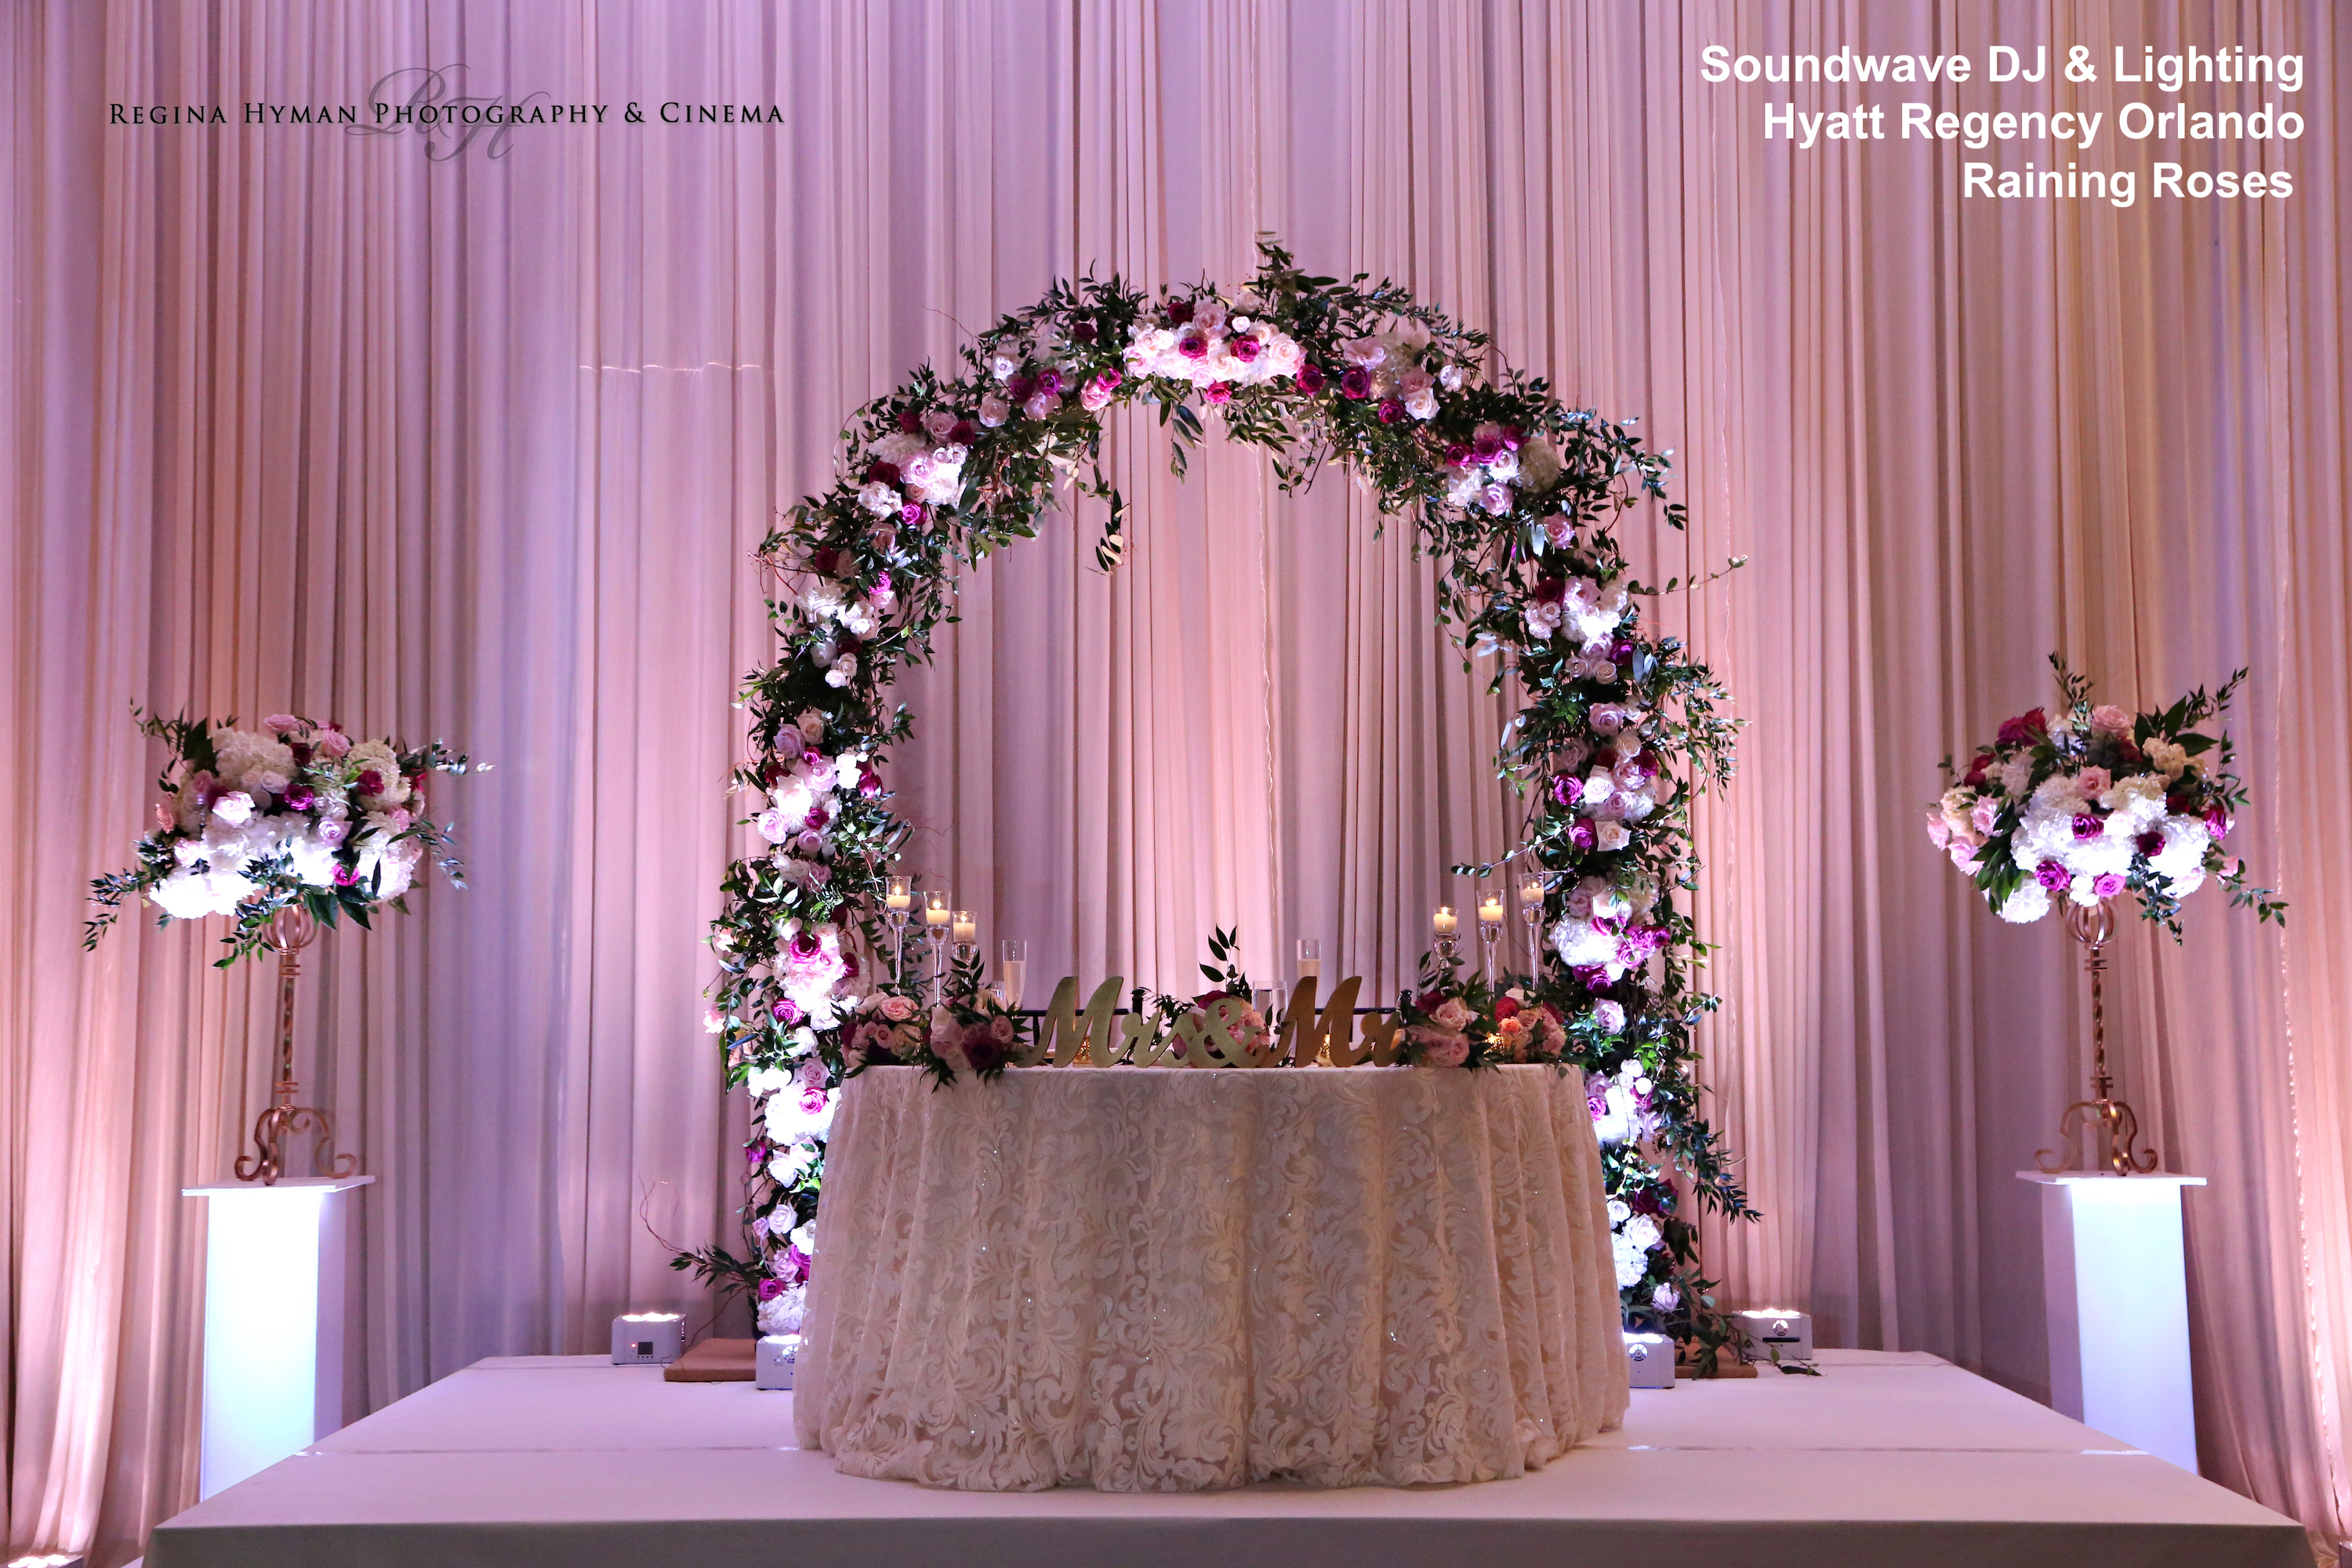 hyatt regency orlando - orlando wedding lighting - orlando wedding dj - soundwave entertainment